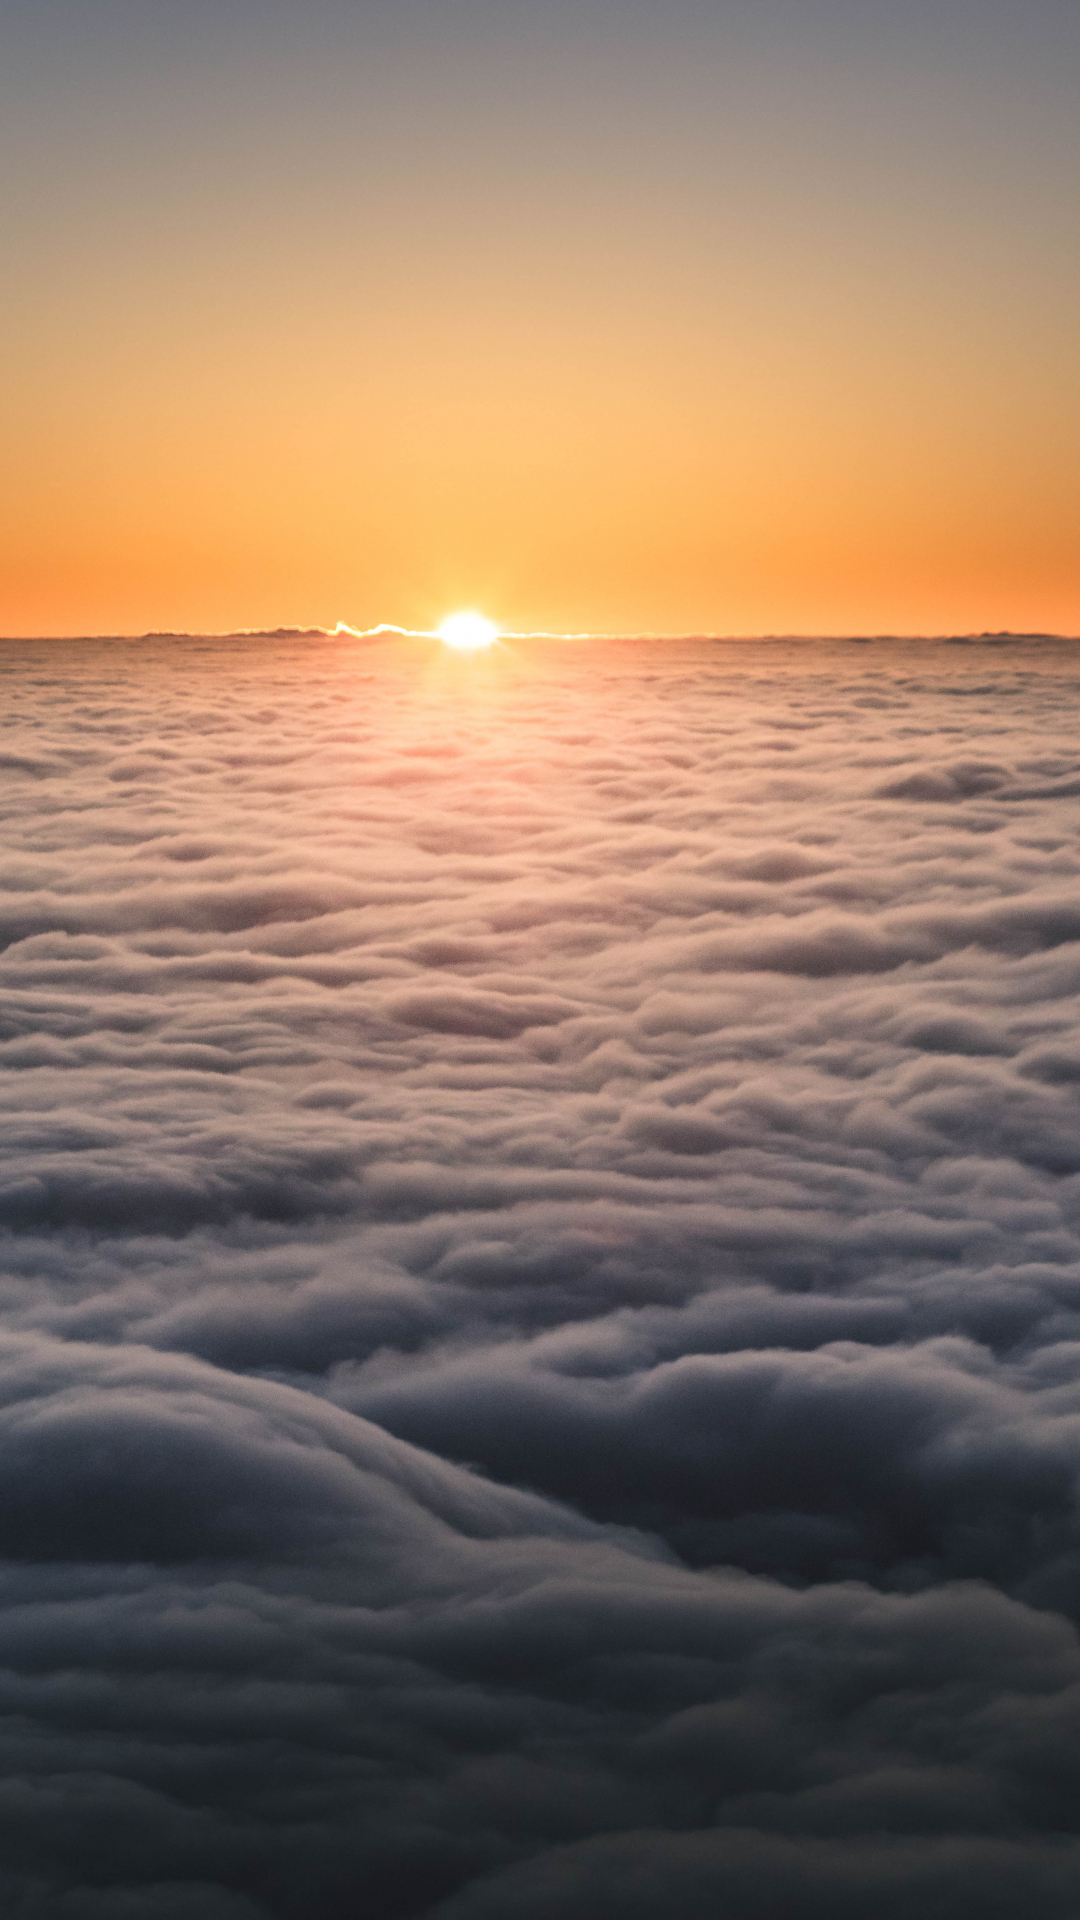 Sunset Above The Clouds Iphone Wallpaper Idrop News